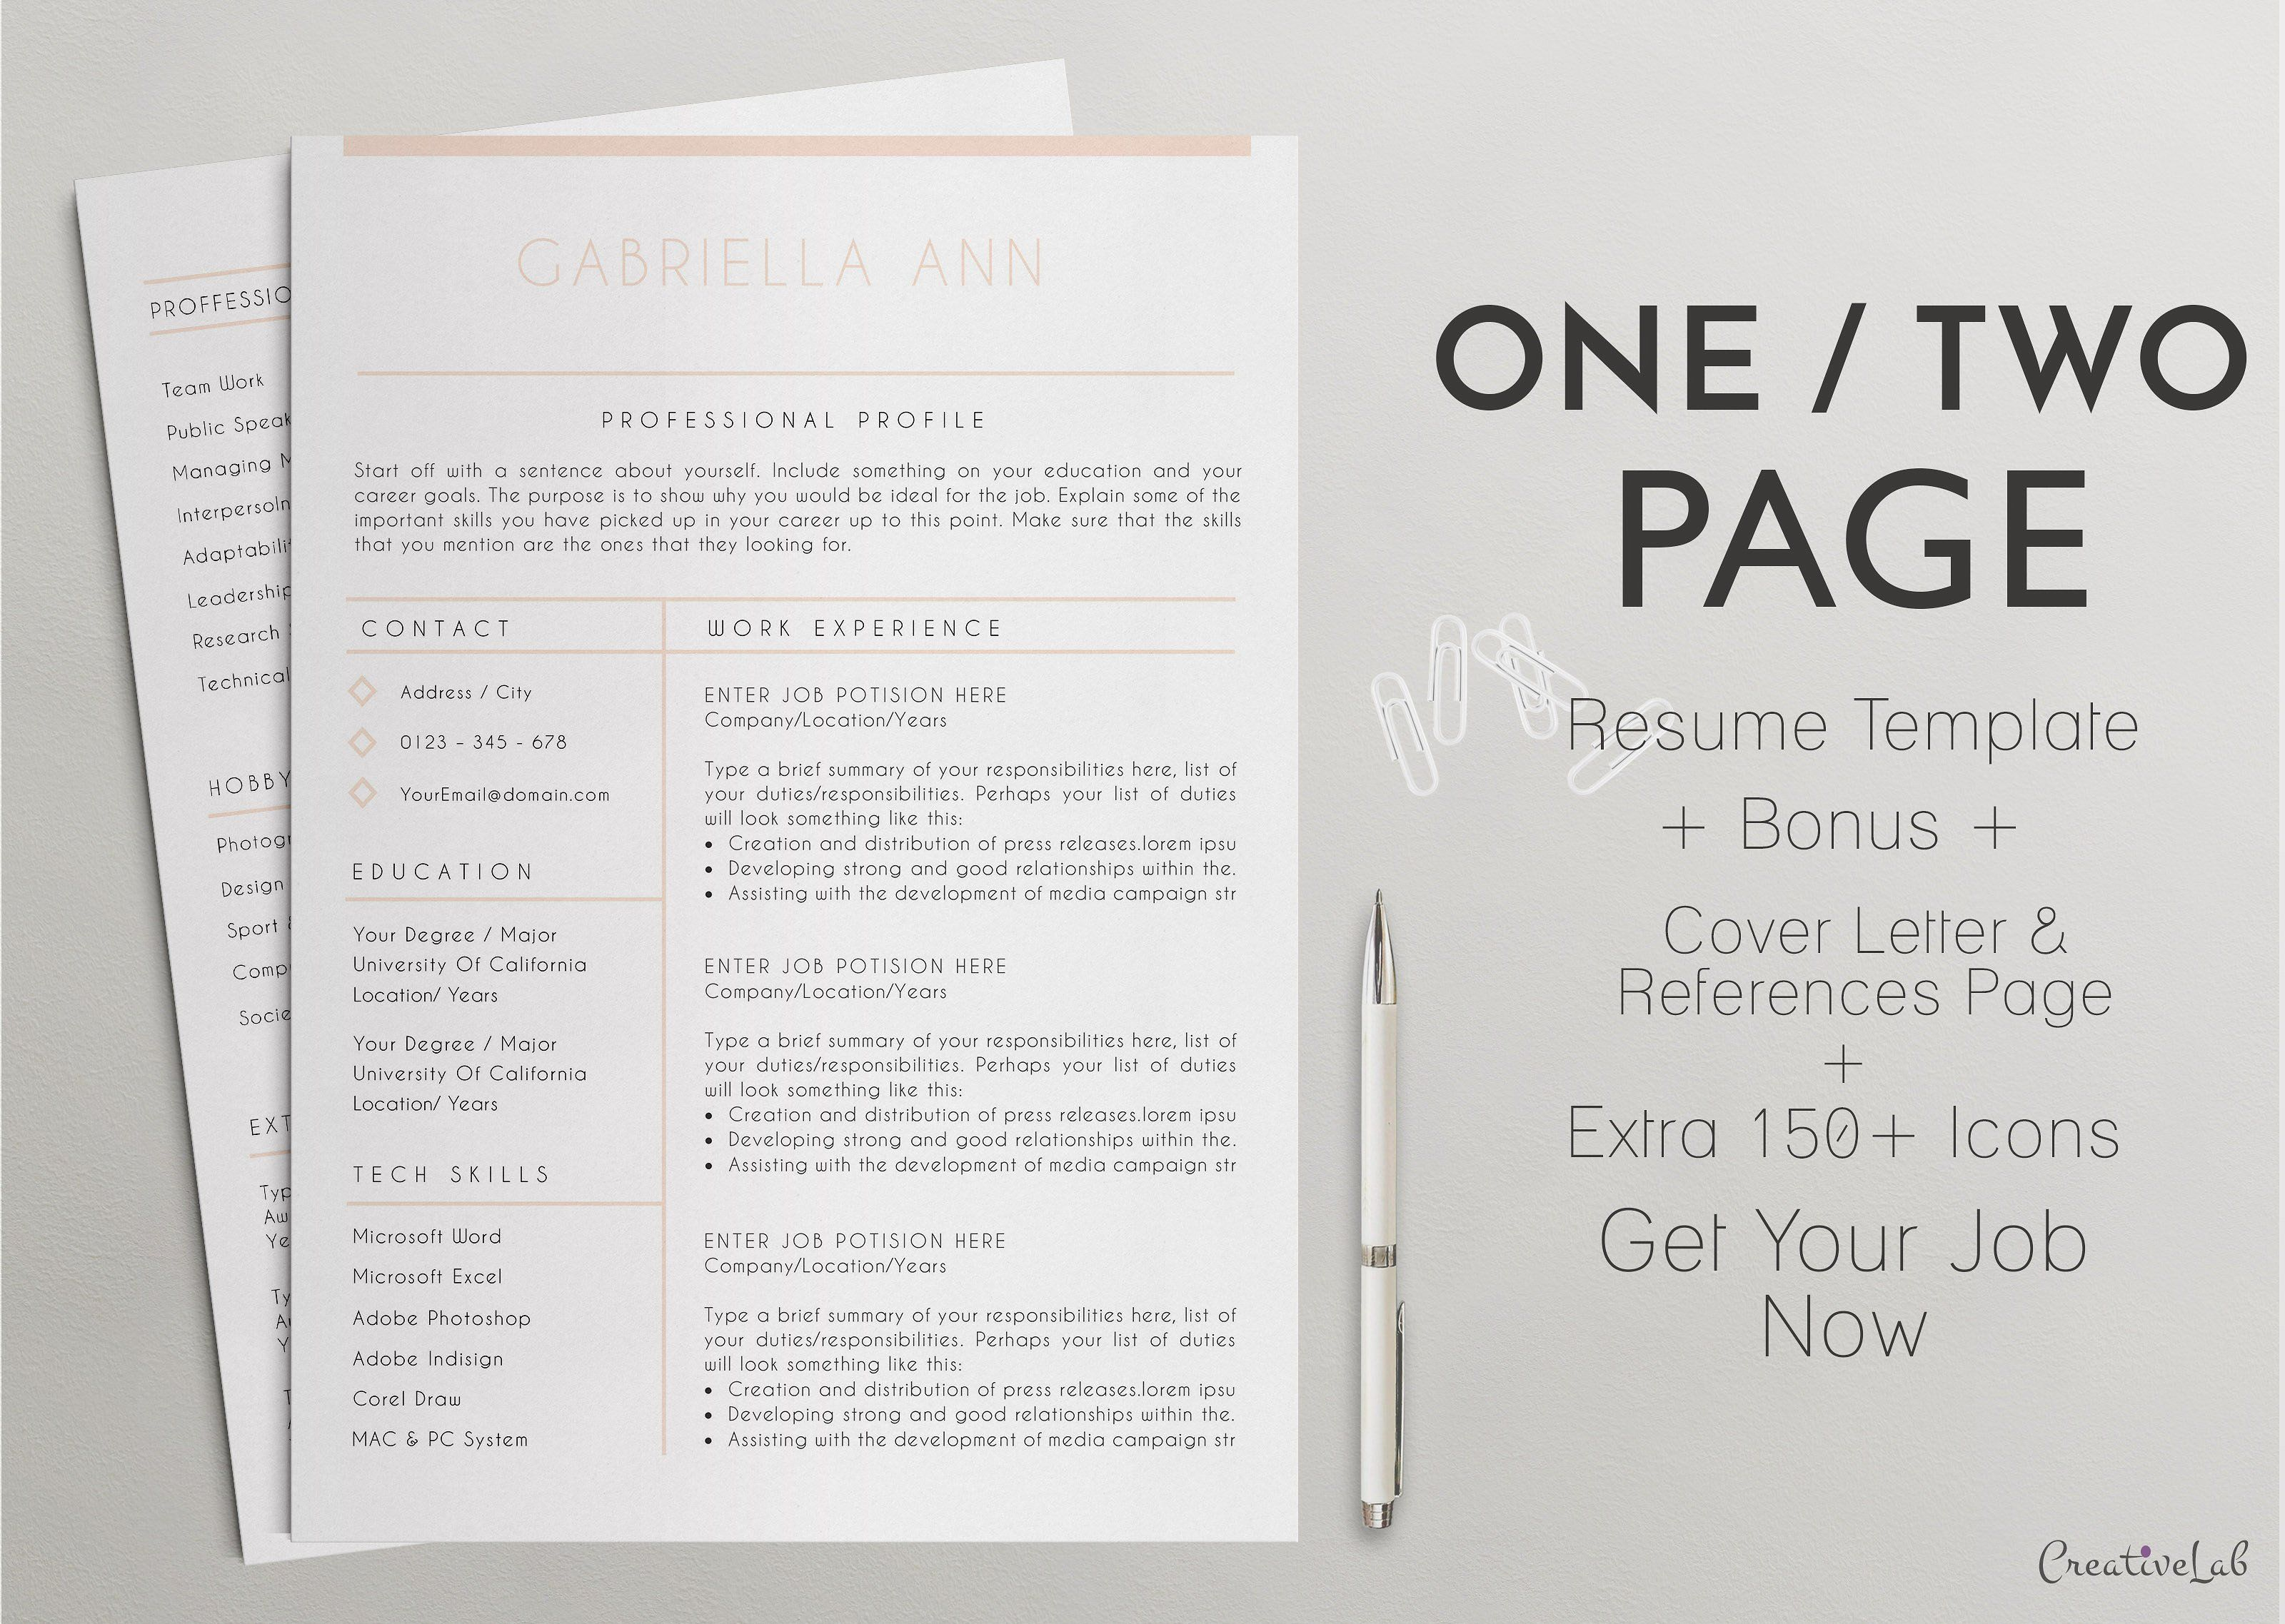 Professional resume cv template 10 resumes 1 resumes professional resume cv template 10 resumes 1 yelopaper Gallery